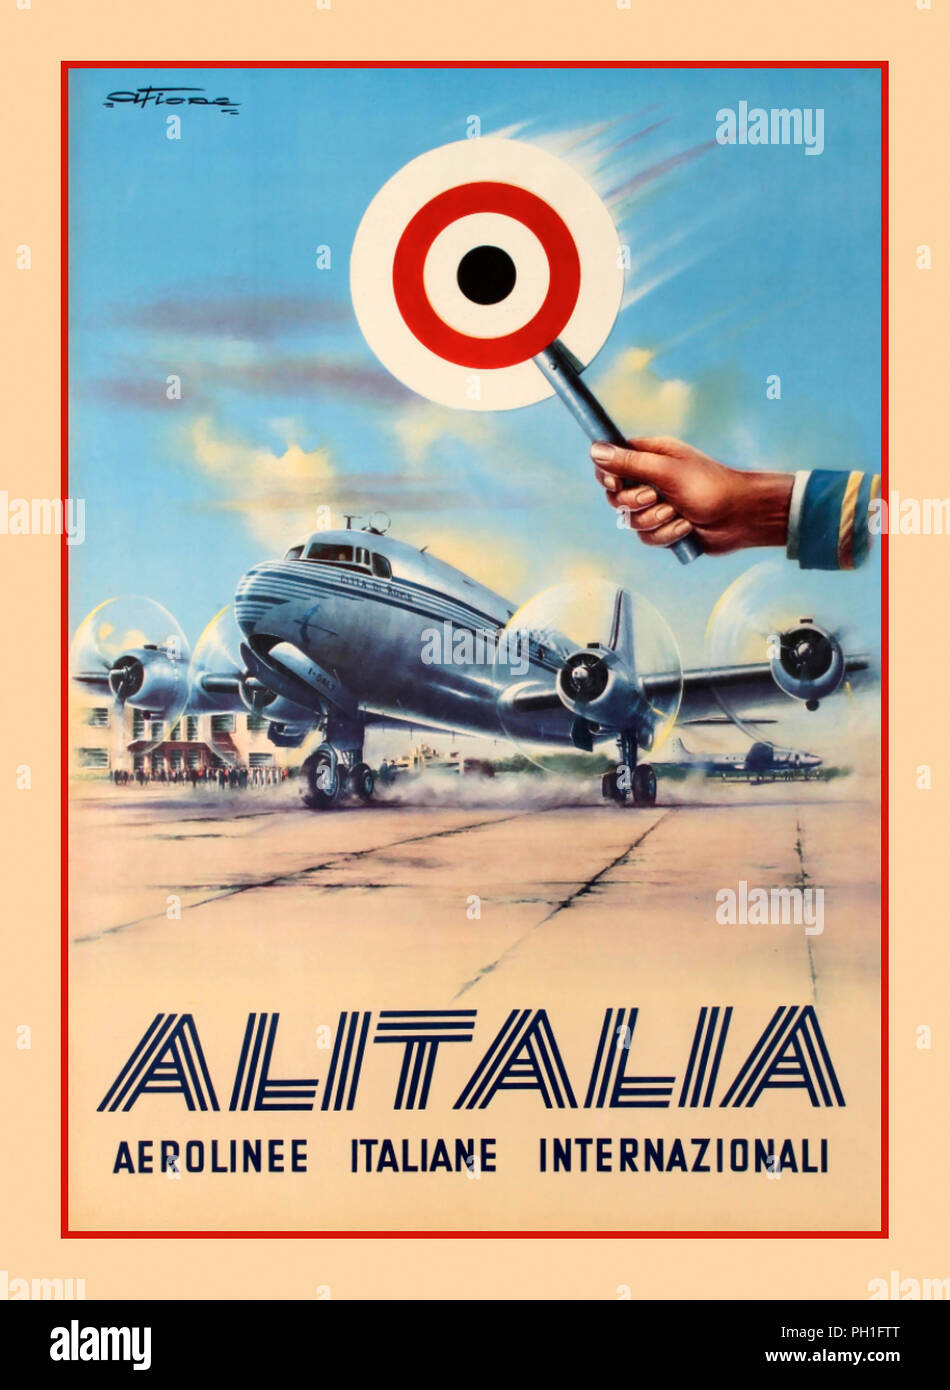 Alitalia – Linee Aeree Italiane S.p.A., established in 1946 as Aerolinee Italiane Internazionali, more commonly known as Alitalia.  Vintage 1950's ALITALIA airline aviation Post War WW2 poster with an Alitalia Douglas DC-4 aircraft on stand named 'Citta de Roma' (aircraft registration I-DALZ). Alitalia bought the plane from Pan Am as 'Clipper Golden Eagle' in 1950 renamed to 'Citta de Roma' - Stock Image